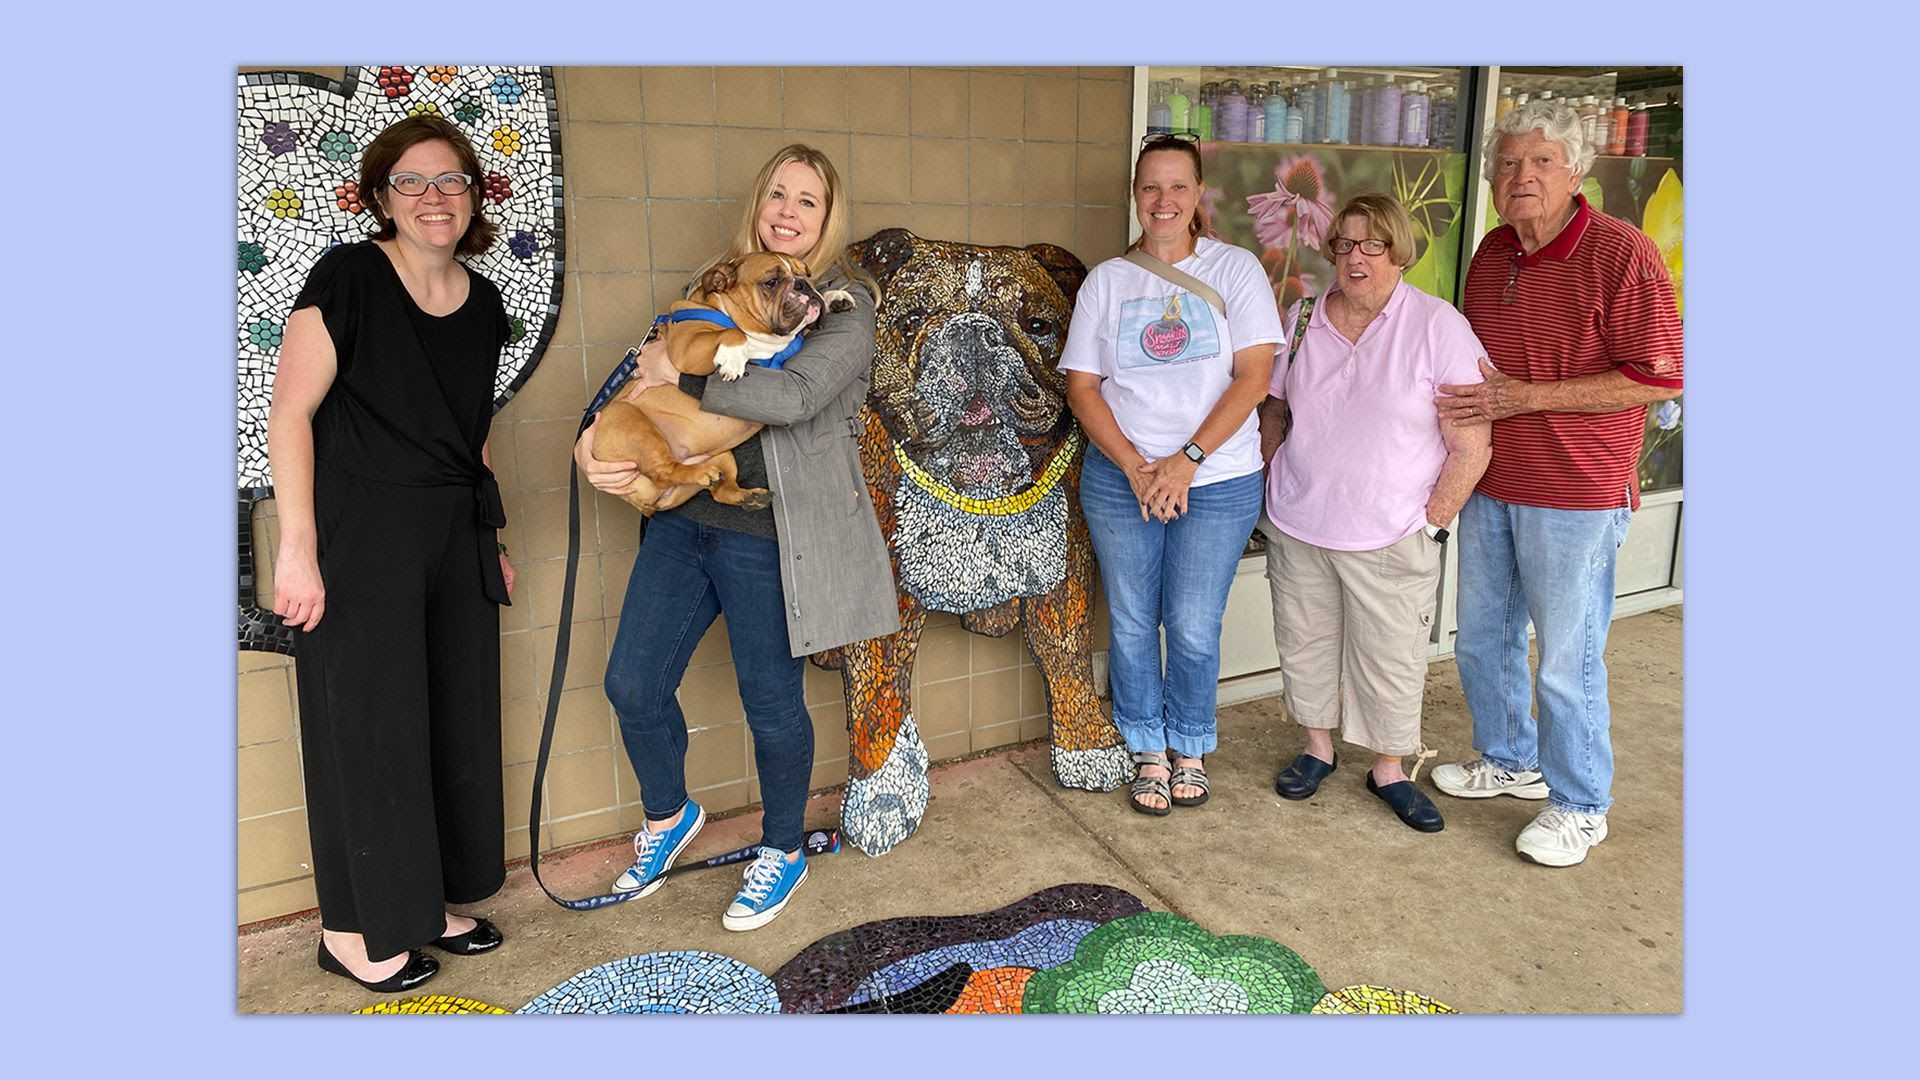 Three women (Artist Nicole James, Maggie Moller and Leslie Hunter) stand in front of James' mural of Moller's dog Frida.